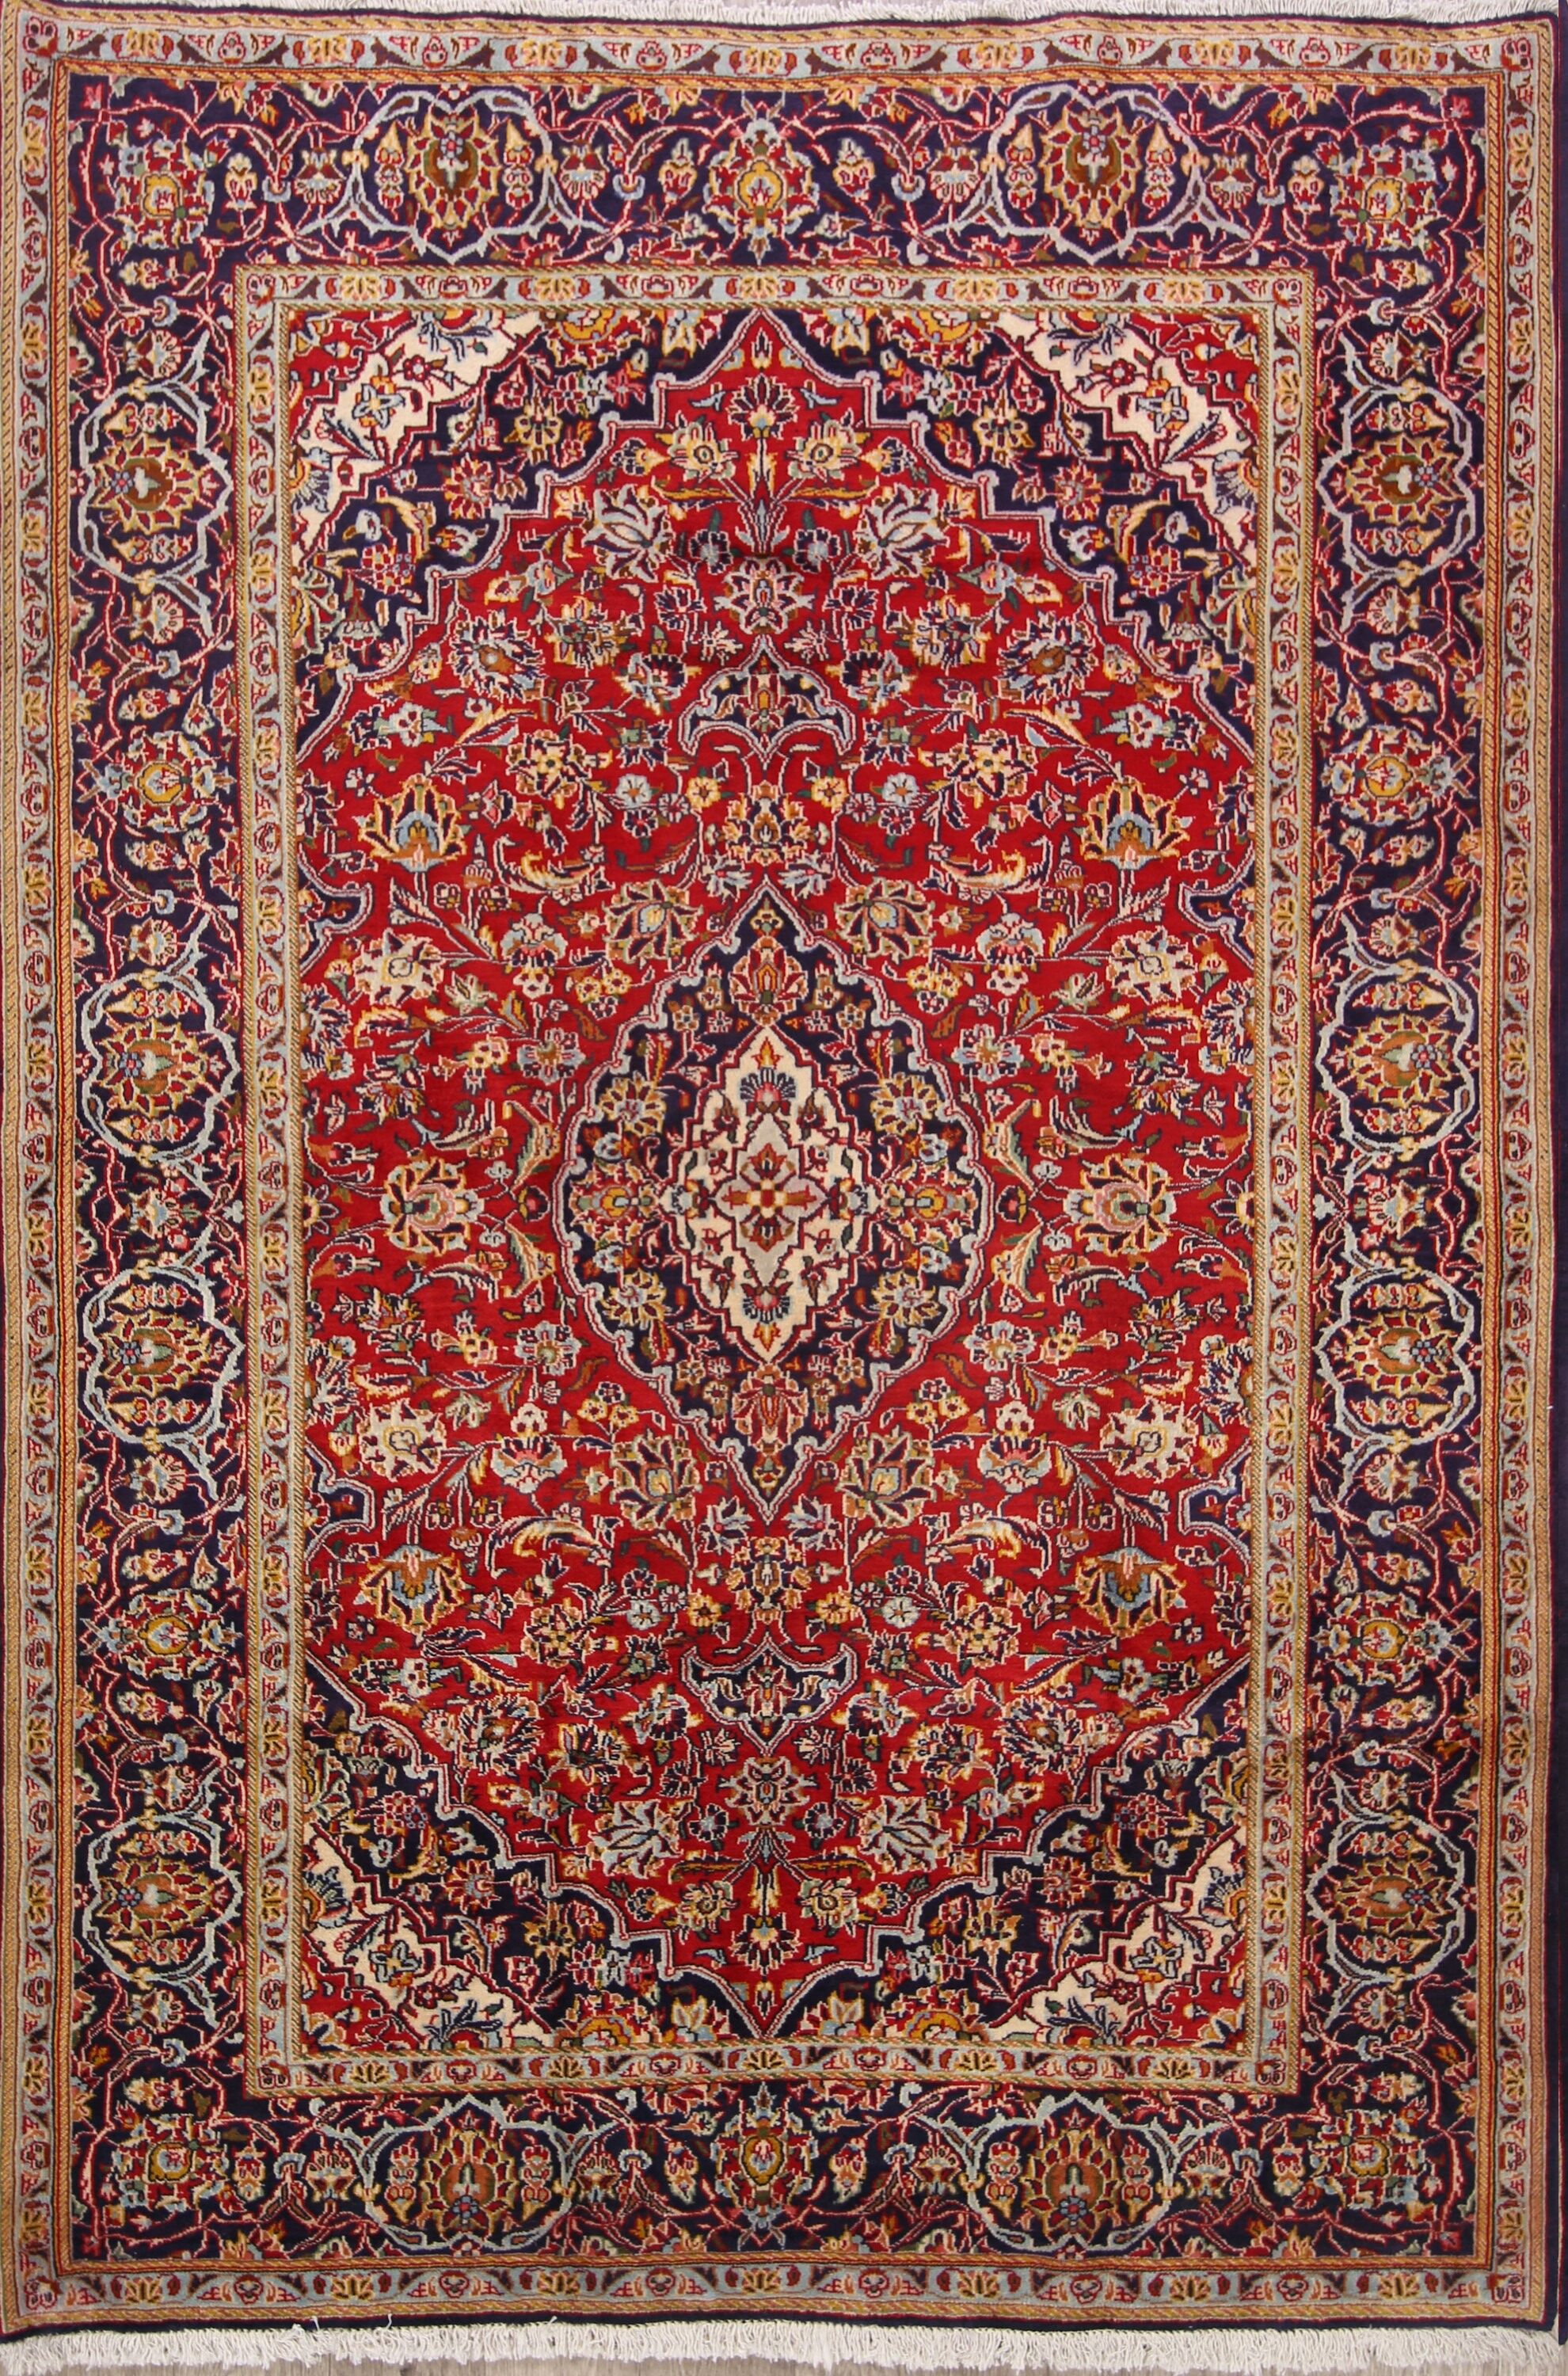 One-of-a-Kind Floral Kashan Dabir Persian Traditional Hand-Knotted 4'9